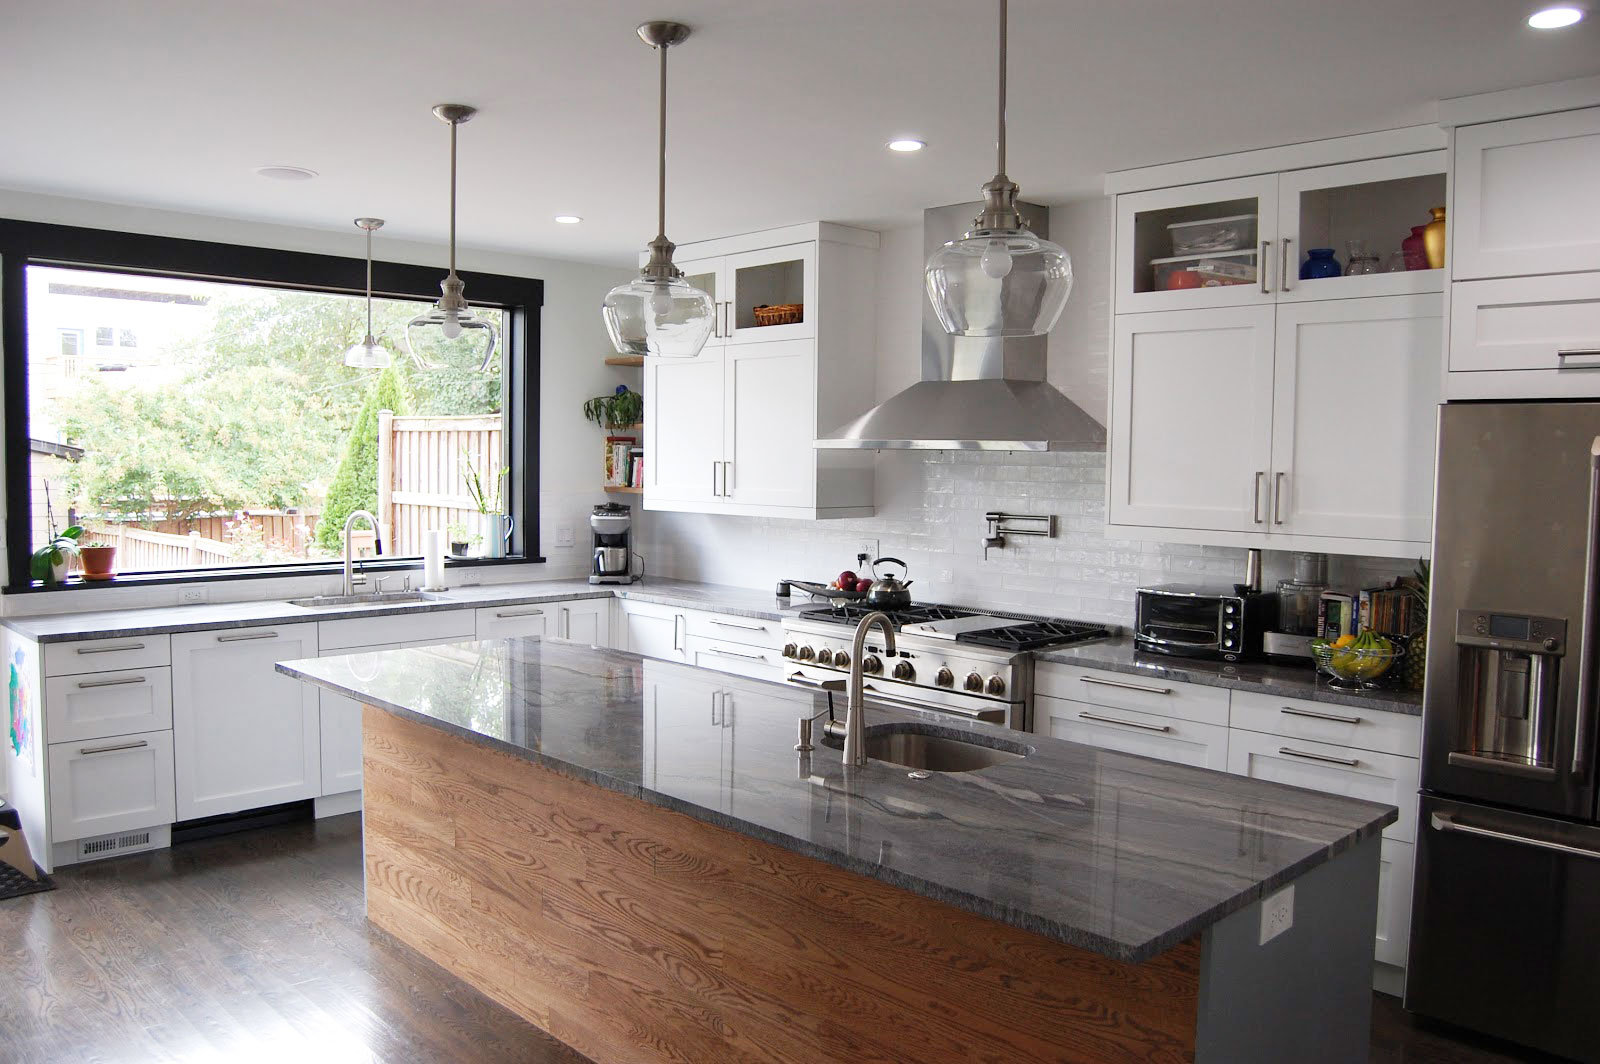 ikea kitchens cabinets corner kitchen shelves cabinet customization re facing peg giving your a custom look